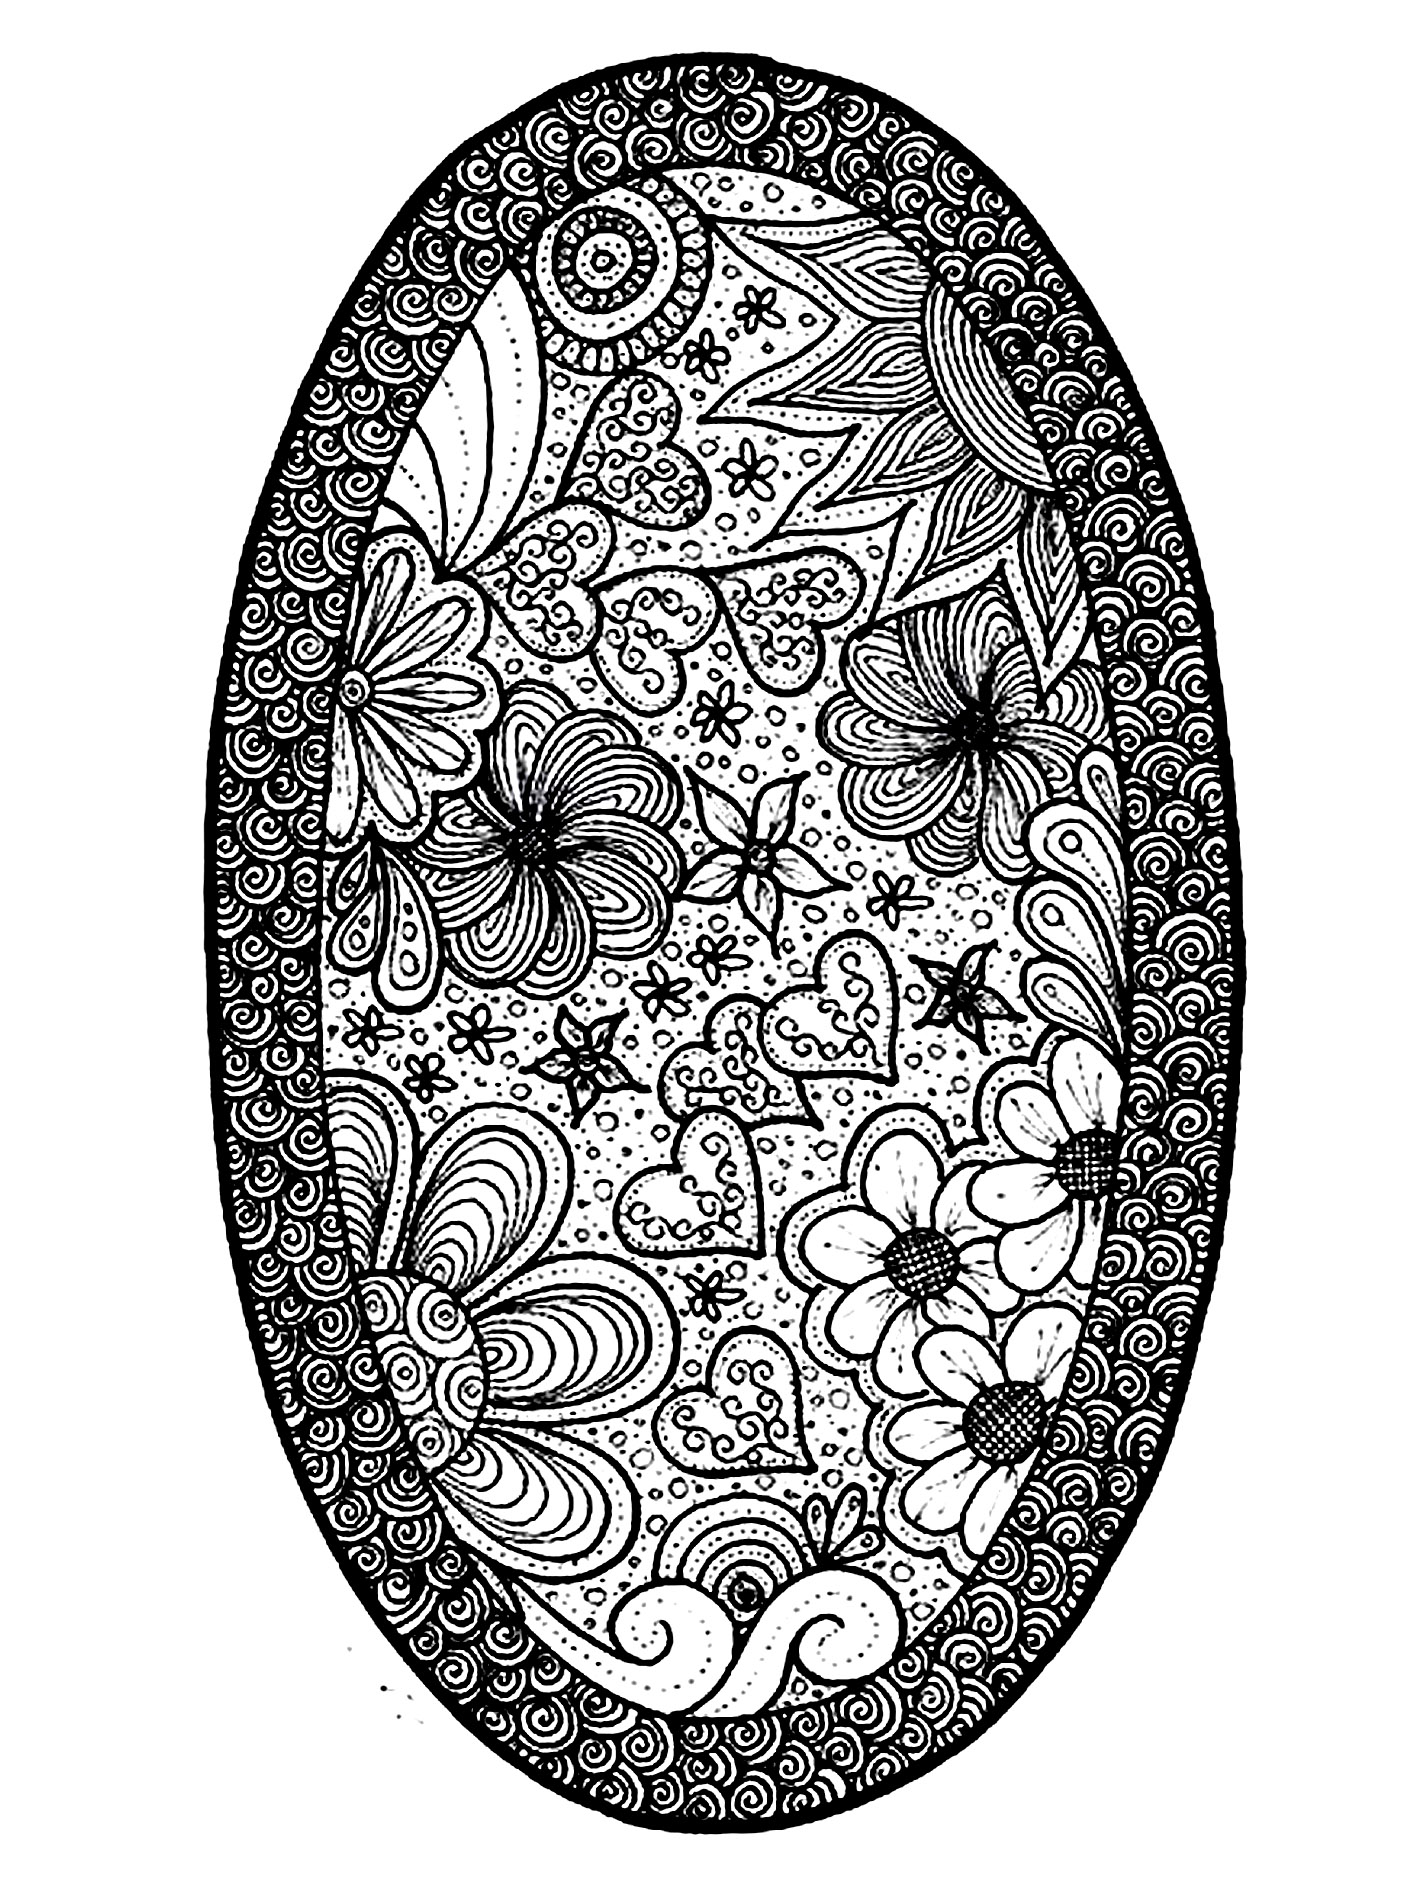 Coloring pages for adults hearts - Flowers And Hearts Coloring Pages Decimamas